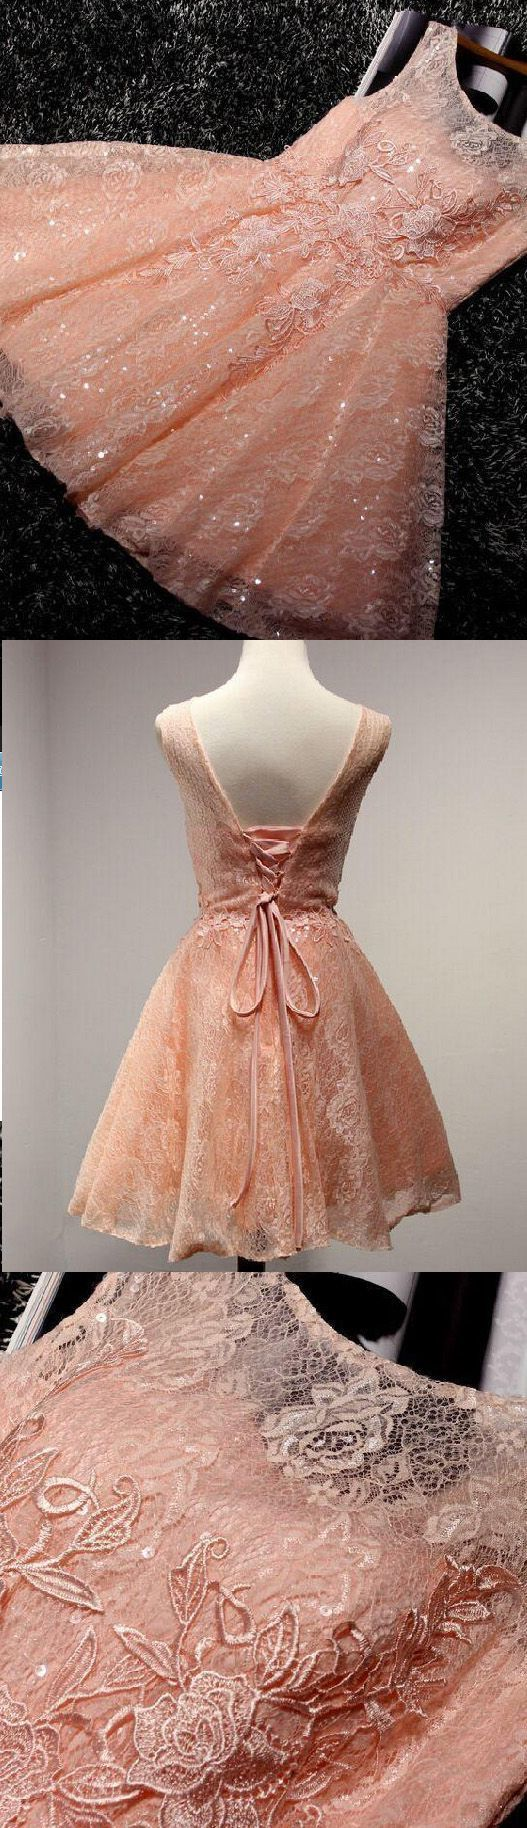 Bling Orange Lace Homecoming Dress,Simple Homecoming Dresses,Cheap Prom